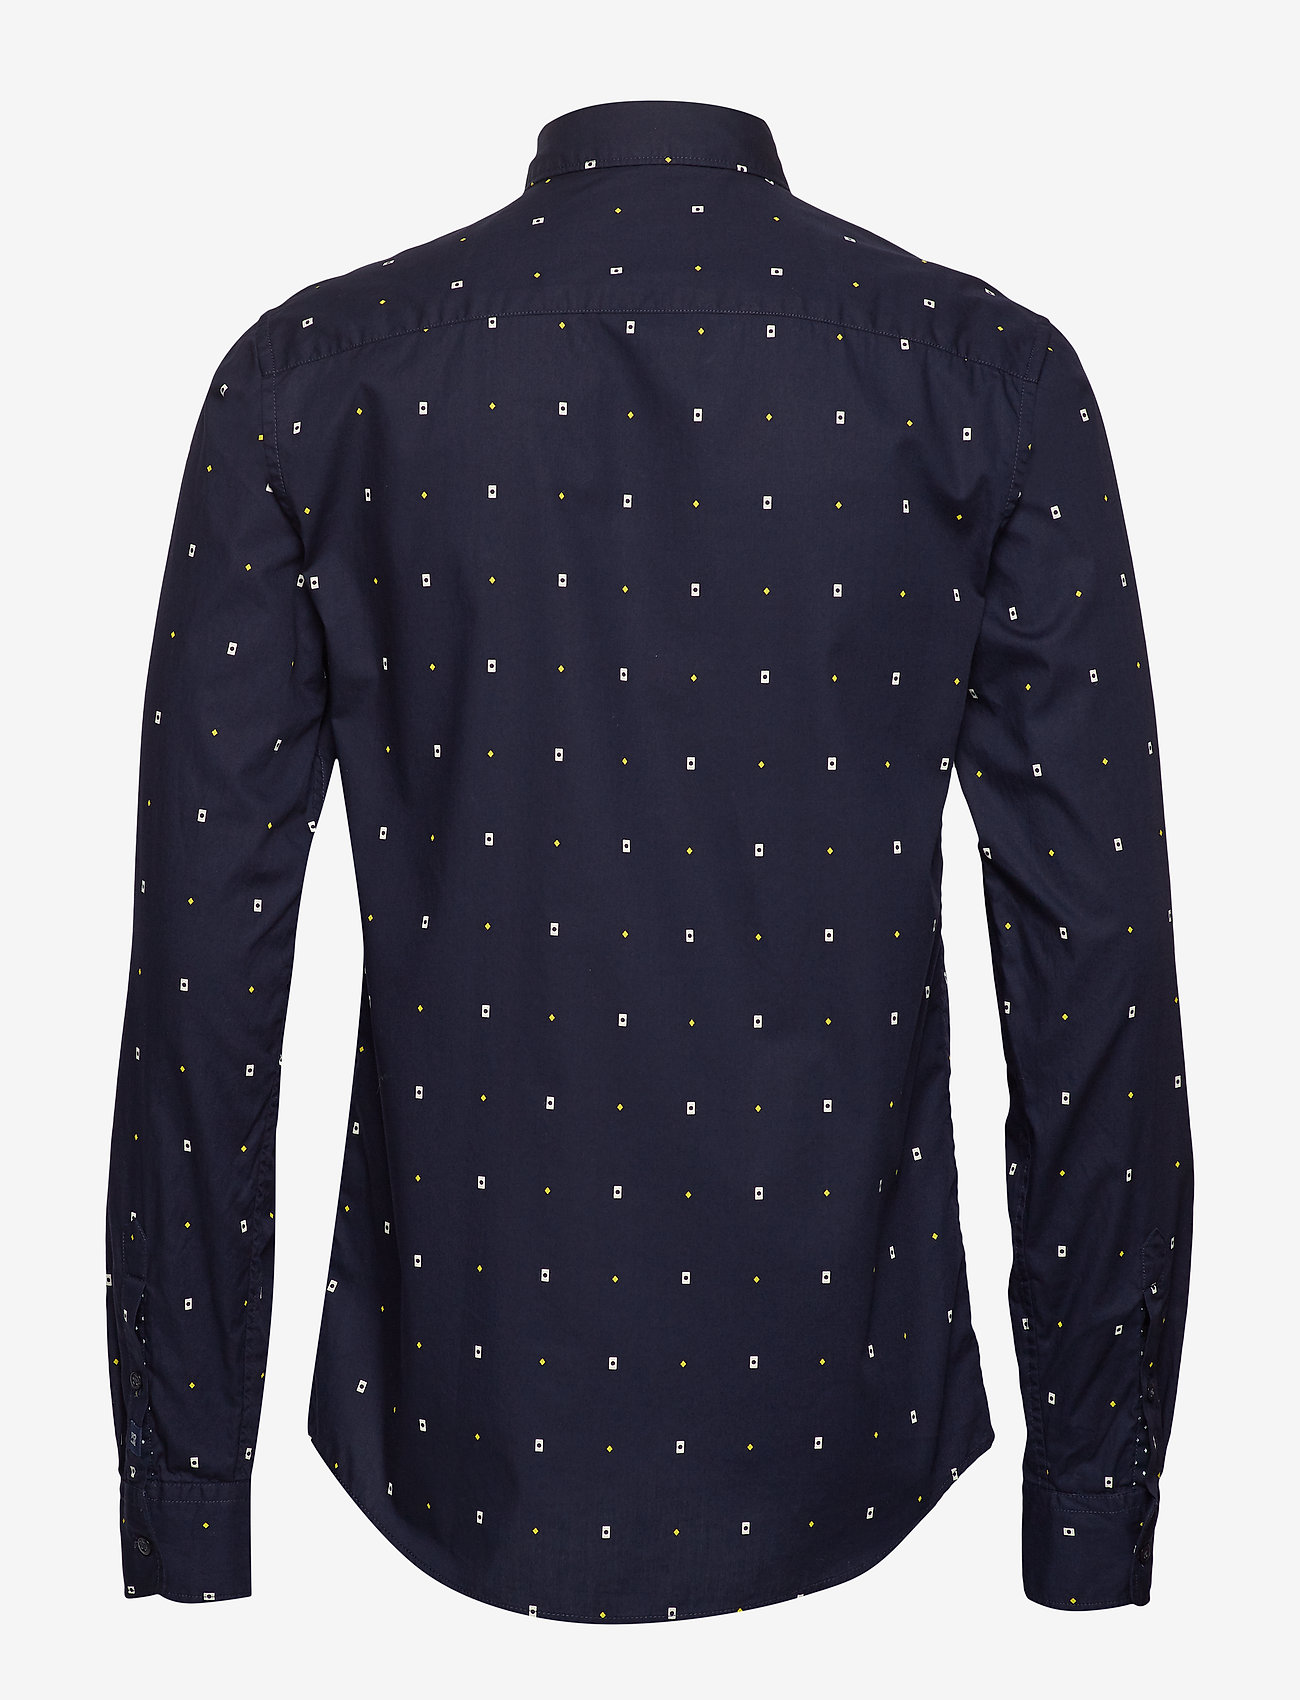 Scotch & Soda - REGULAR FIT- Classic all-over printed pochet shirt - chemises d'affaires - combo a - 1